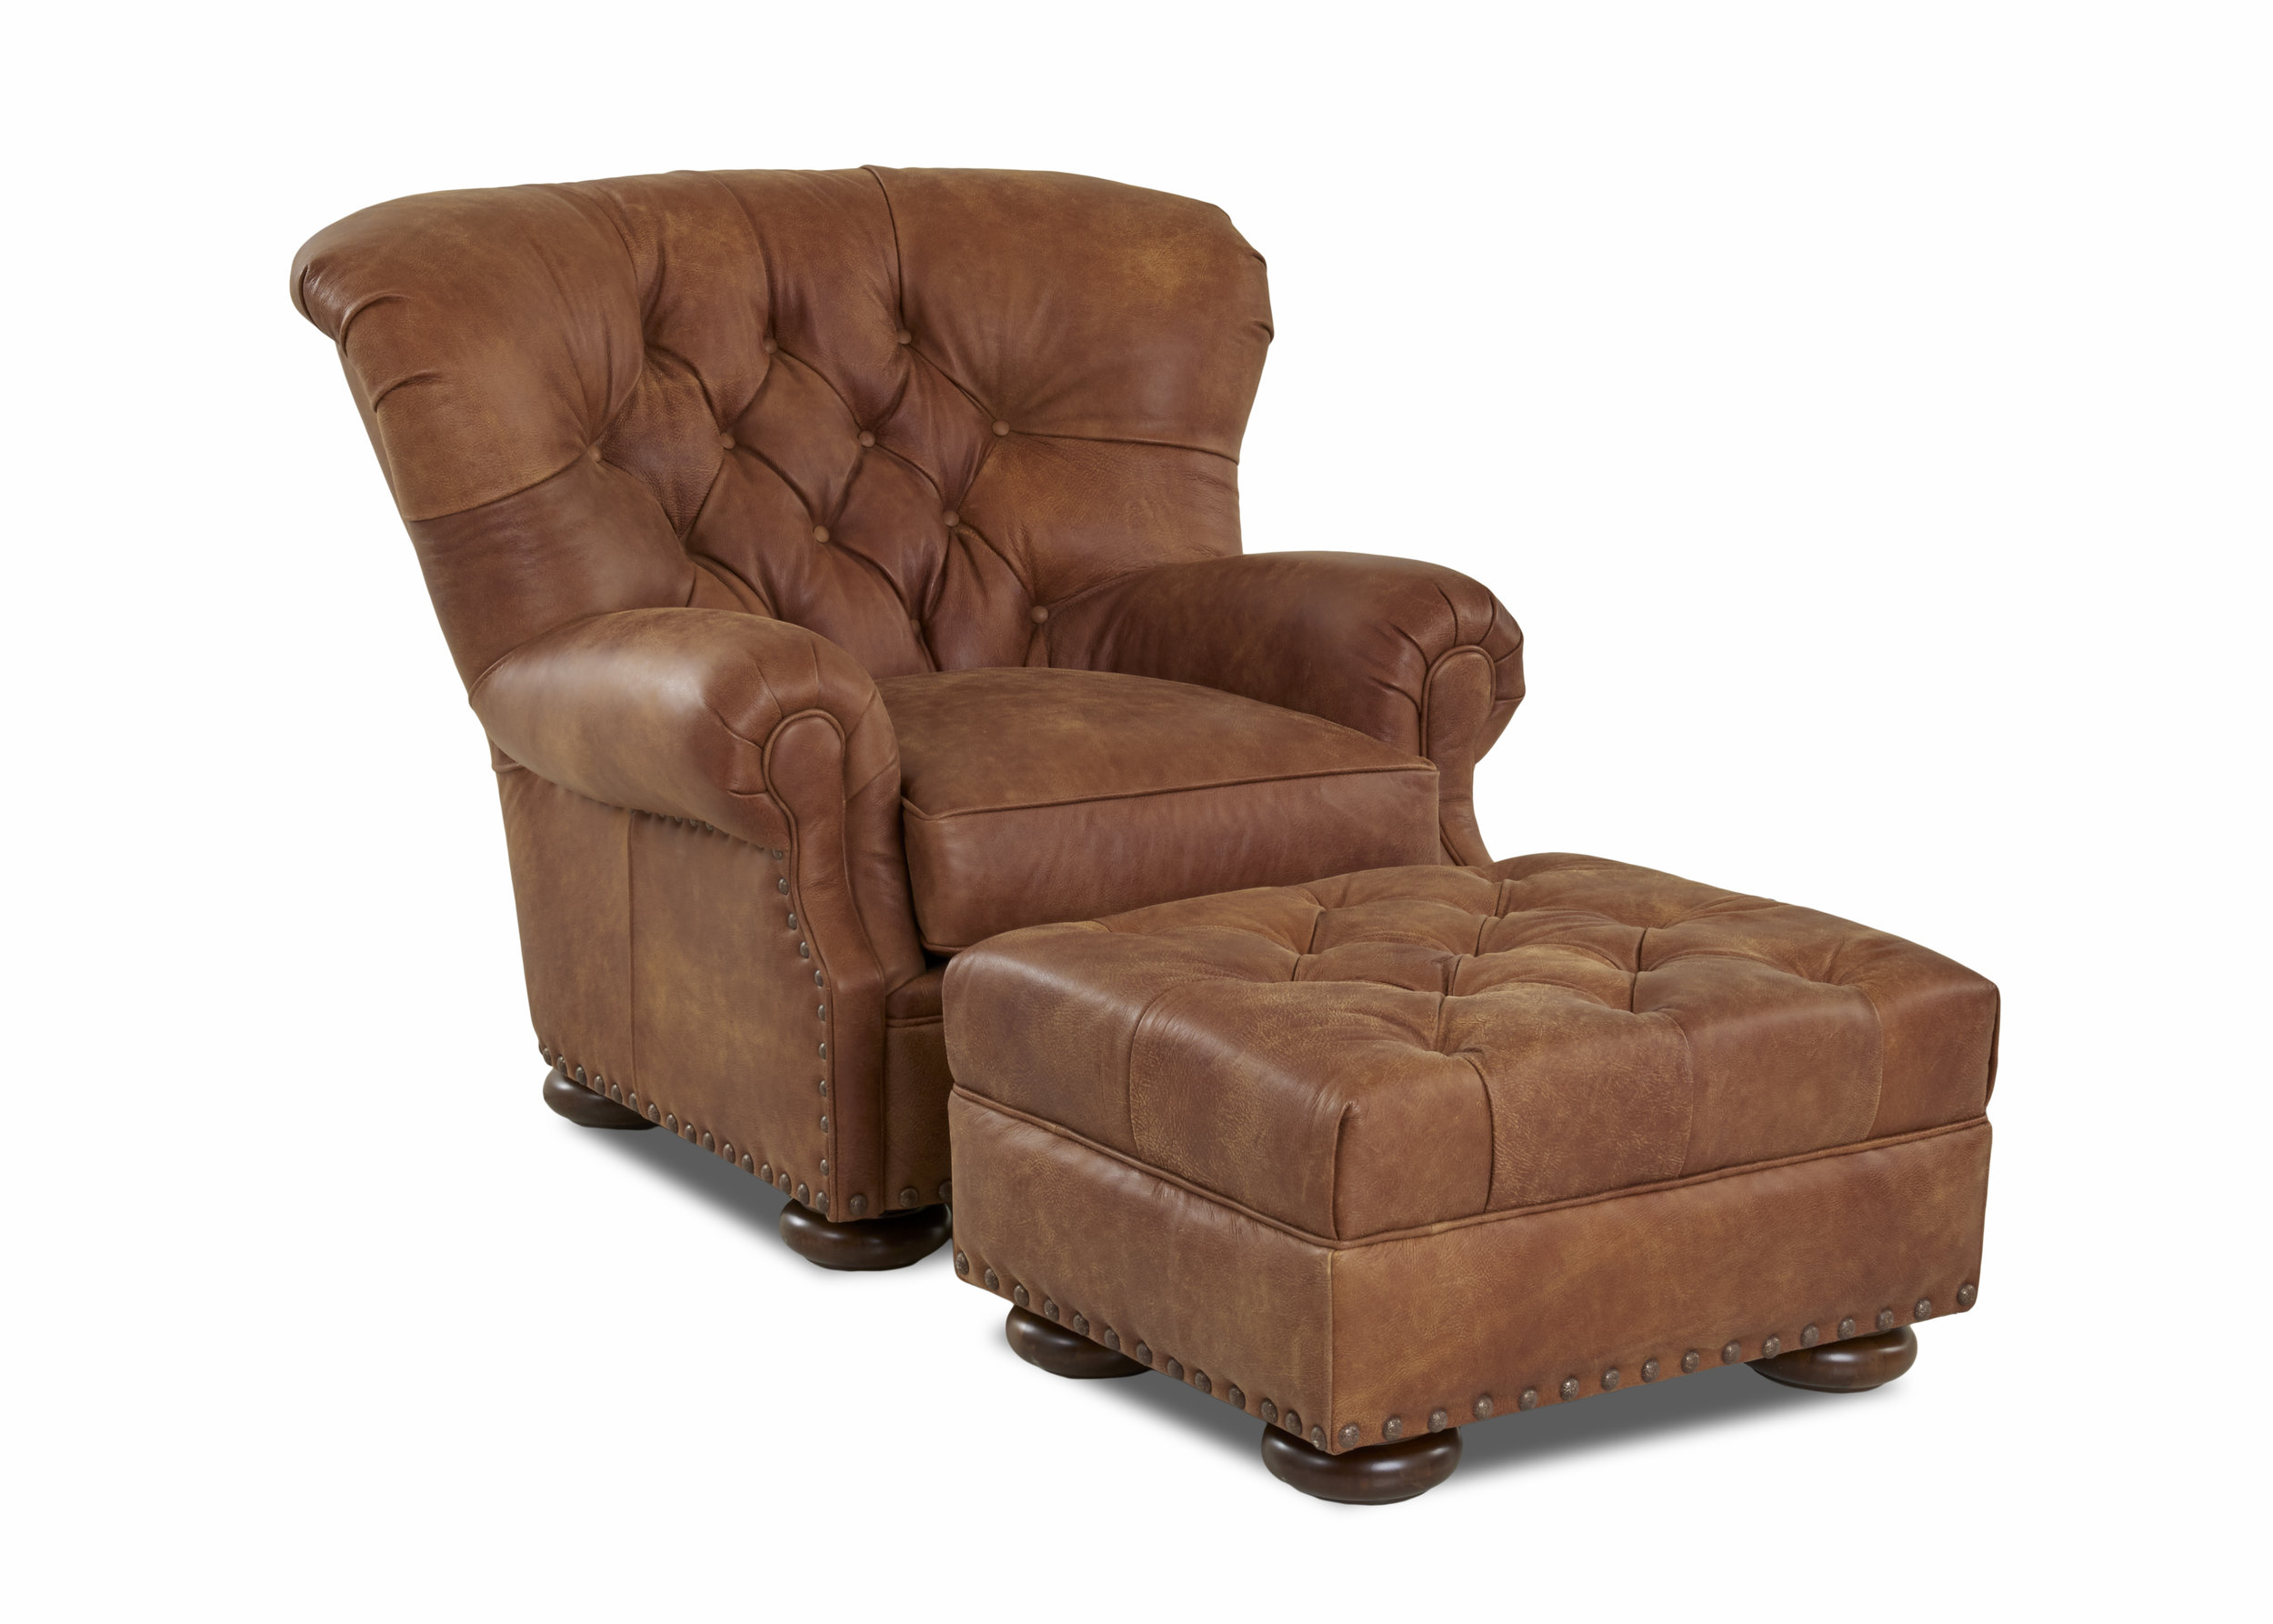 Customizable Aspen Leather Tufted Chair Miller S Home Furnishings